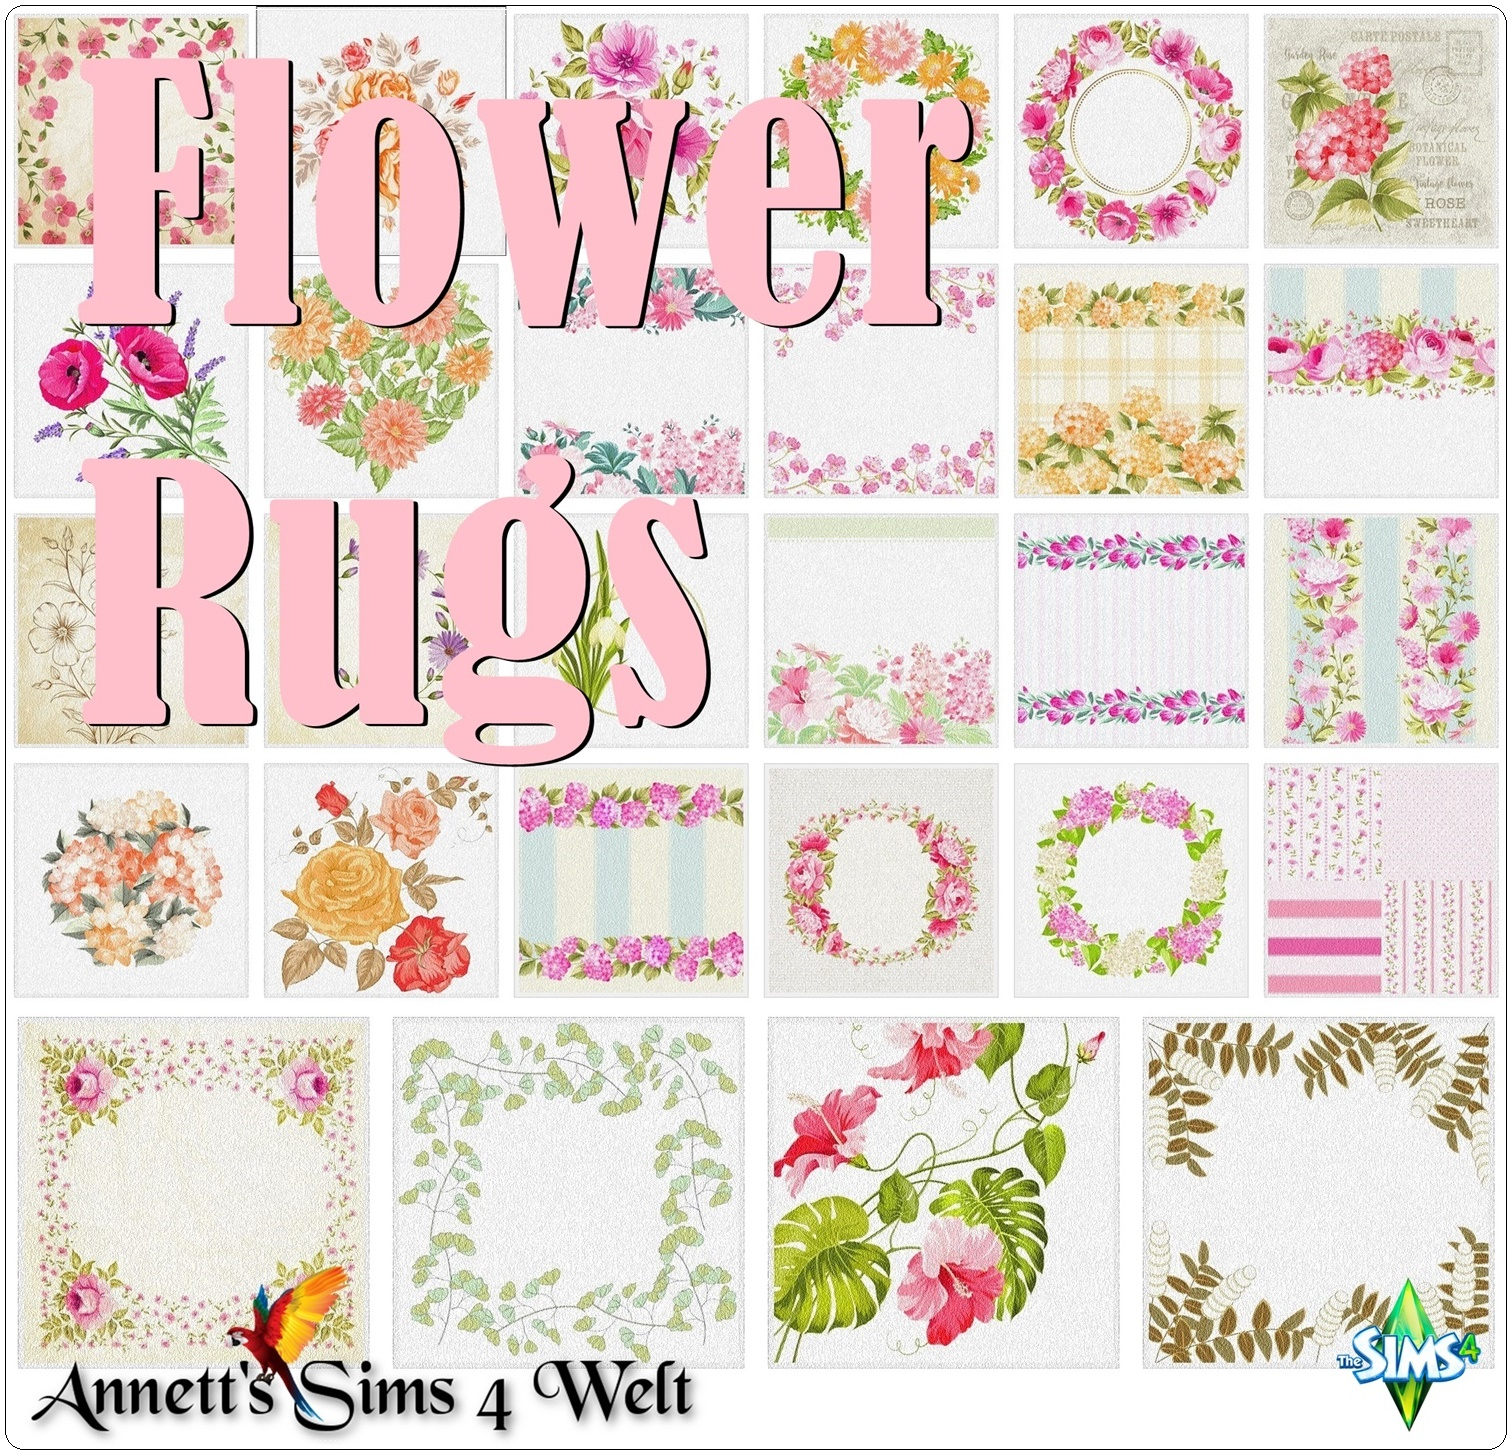 Sims 3 Teppiche Download Annett 39s Sims 4 Welt Flower Rugs